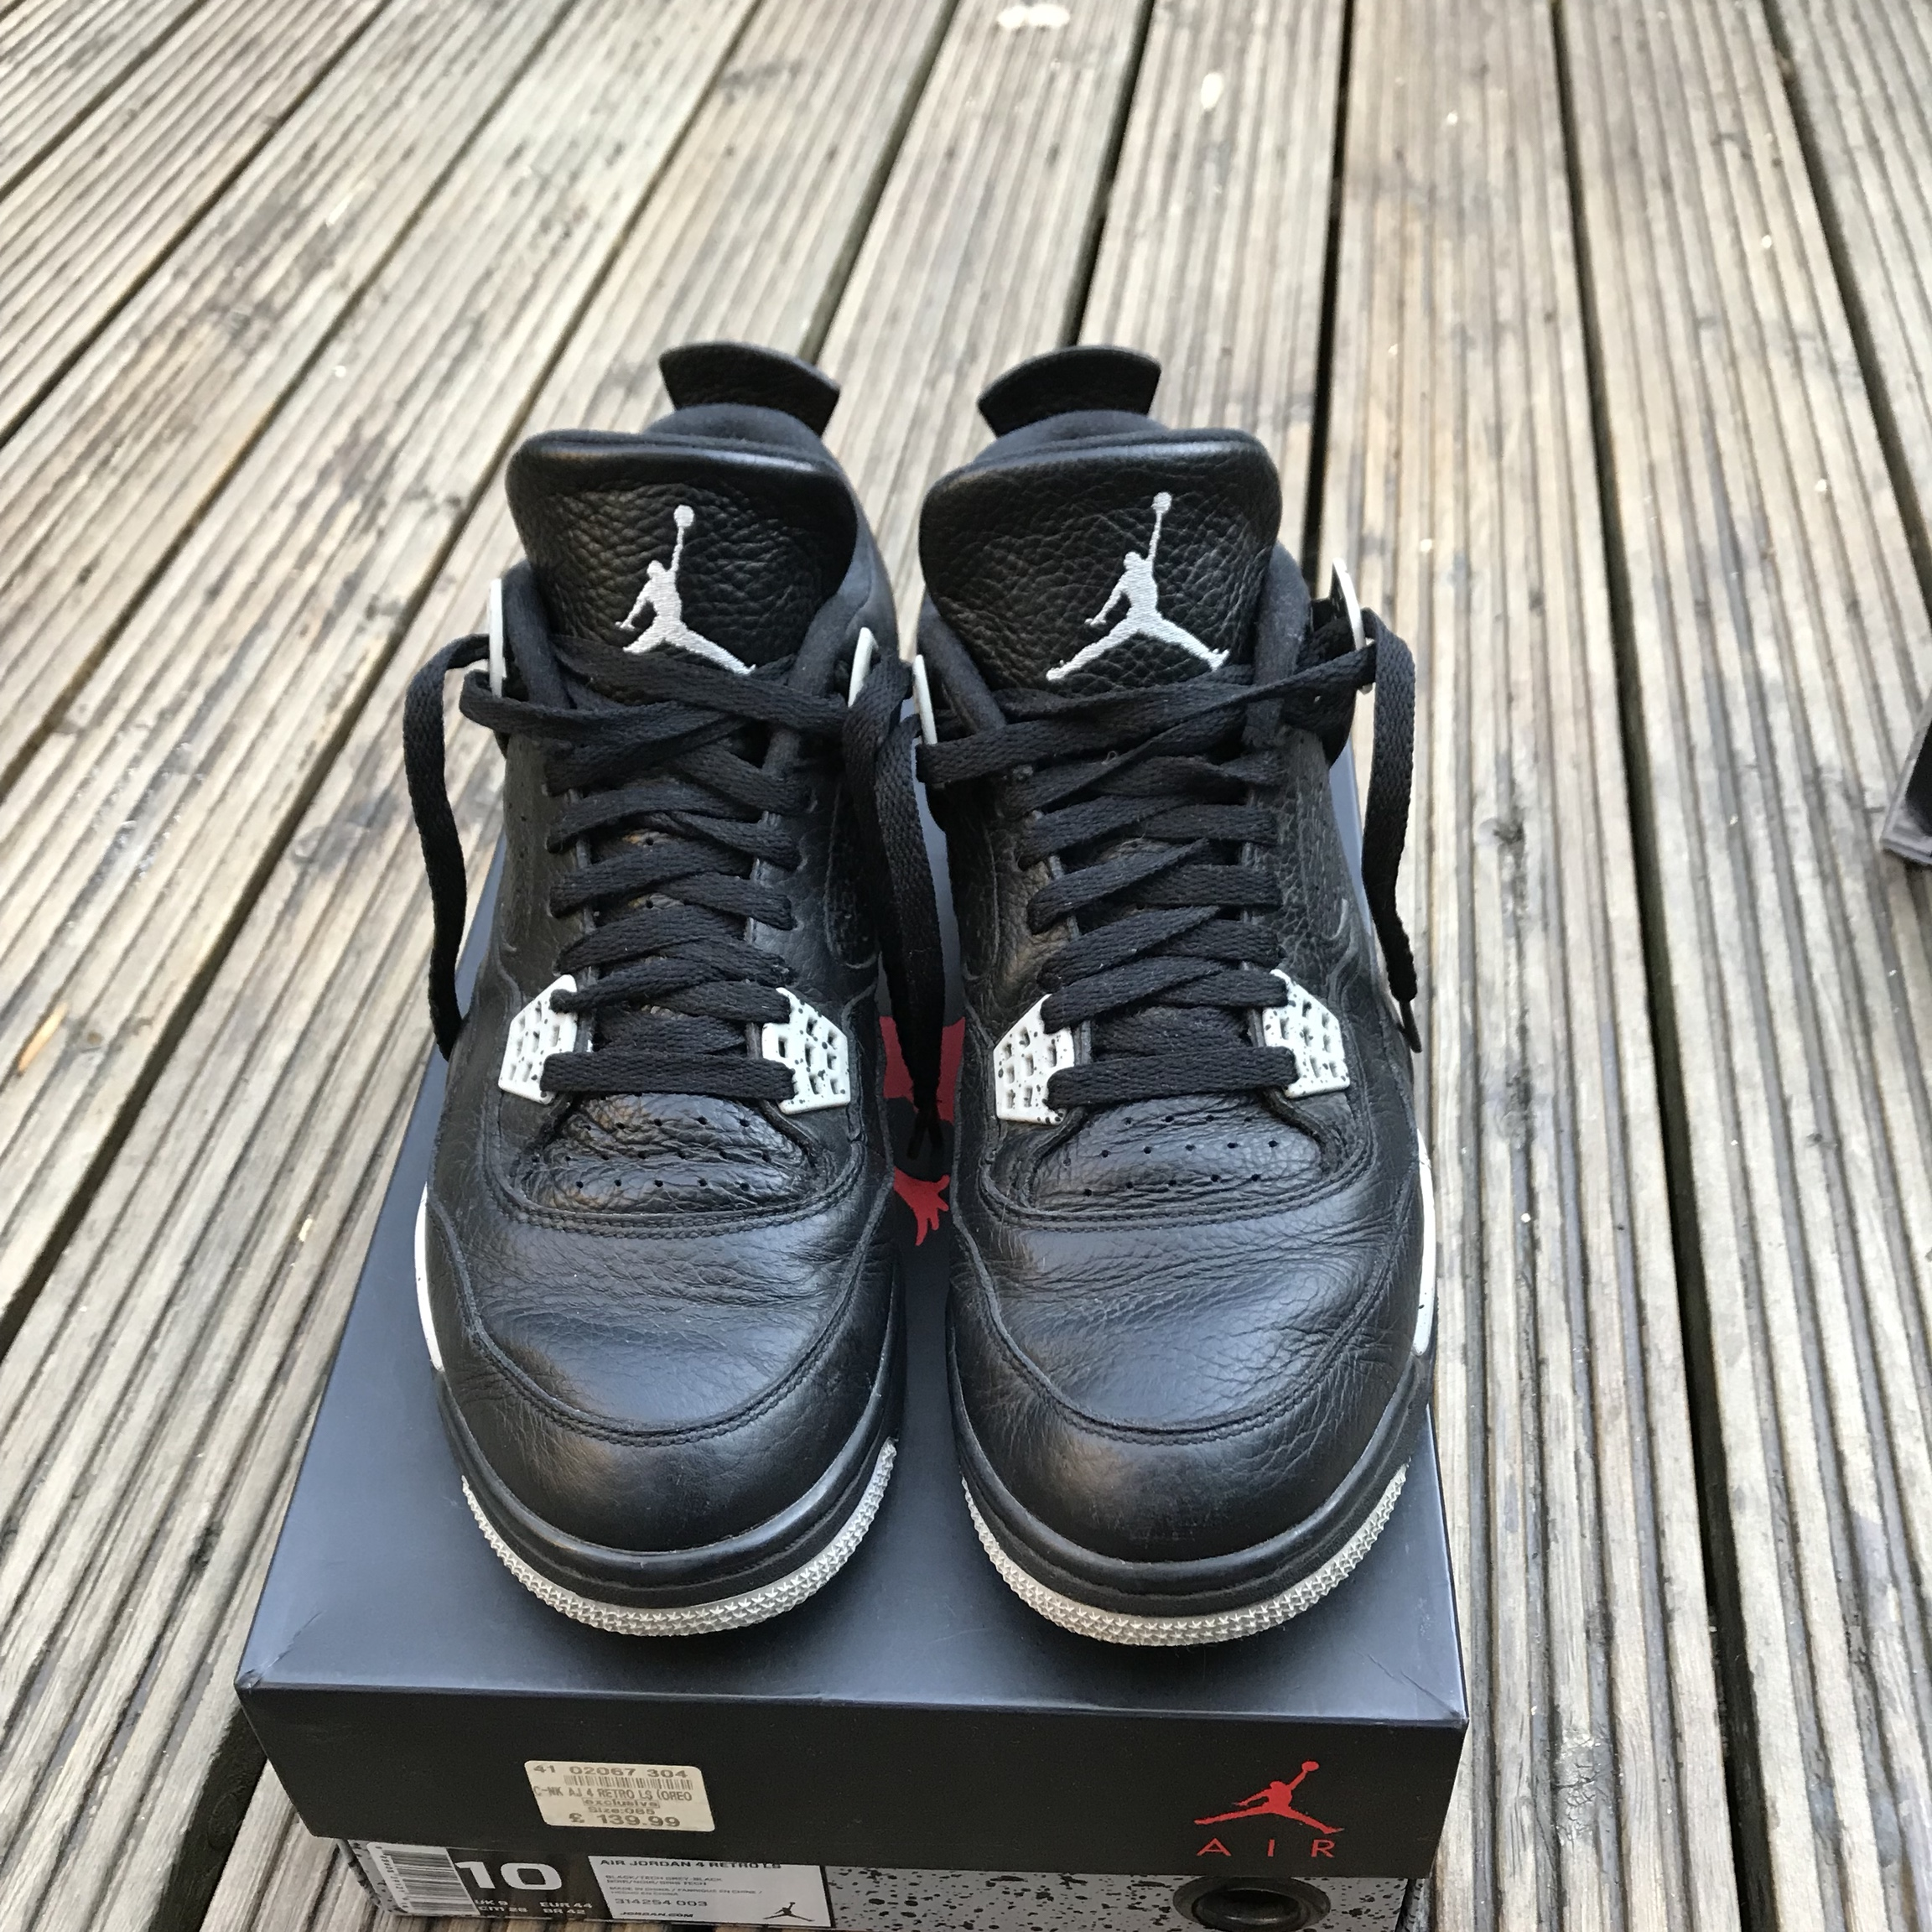 size 40 3ee6f 39c38 *PRICE DROP* Nike Jordan 4 Oreo. 8.5/10 as you can ...